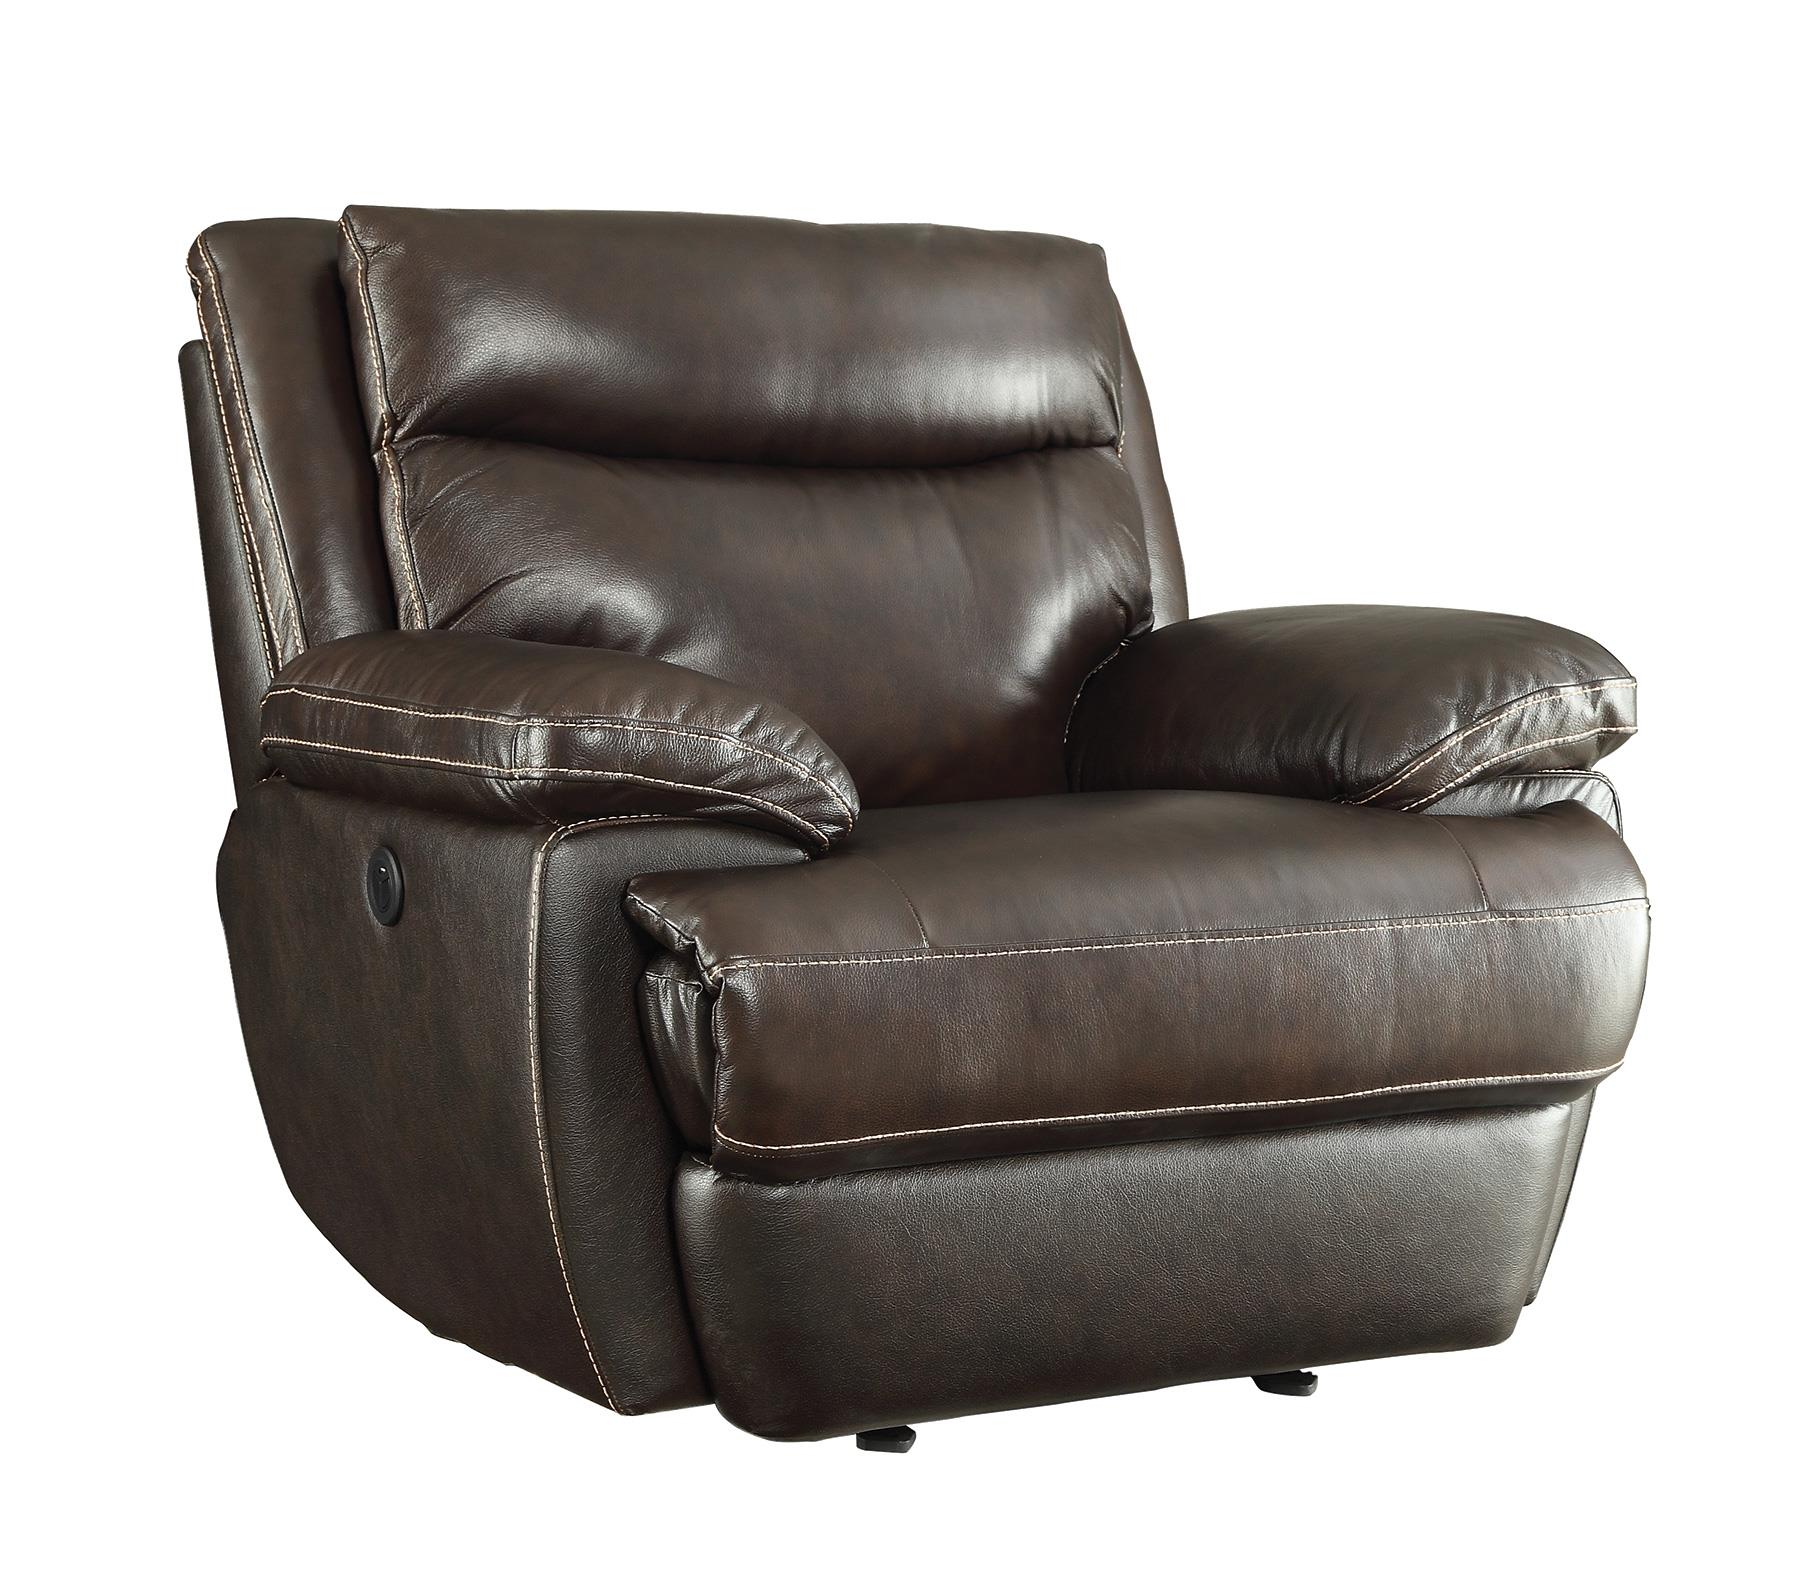 Coaster Macpherson 601813p Casual Power Recliner With